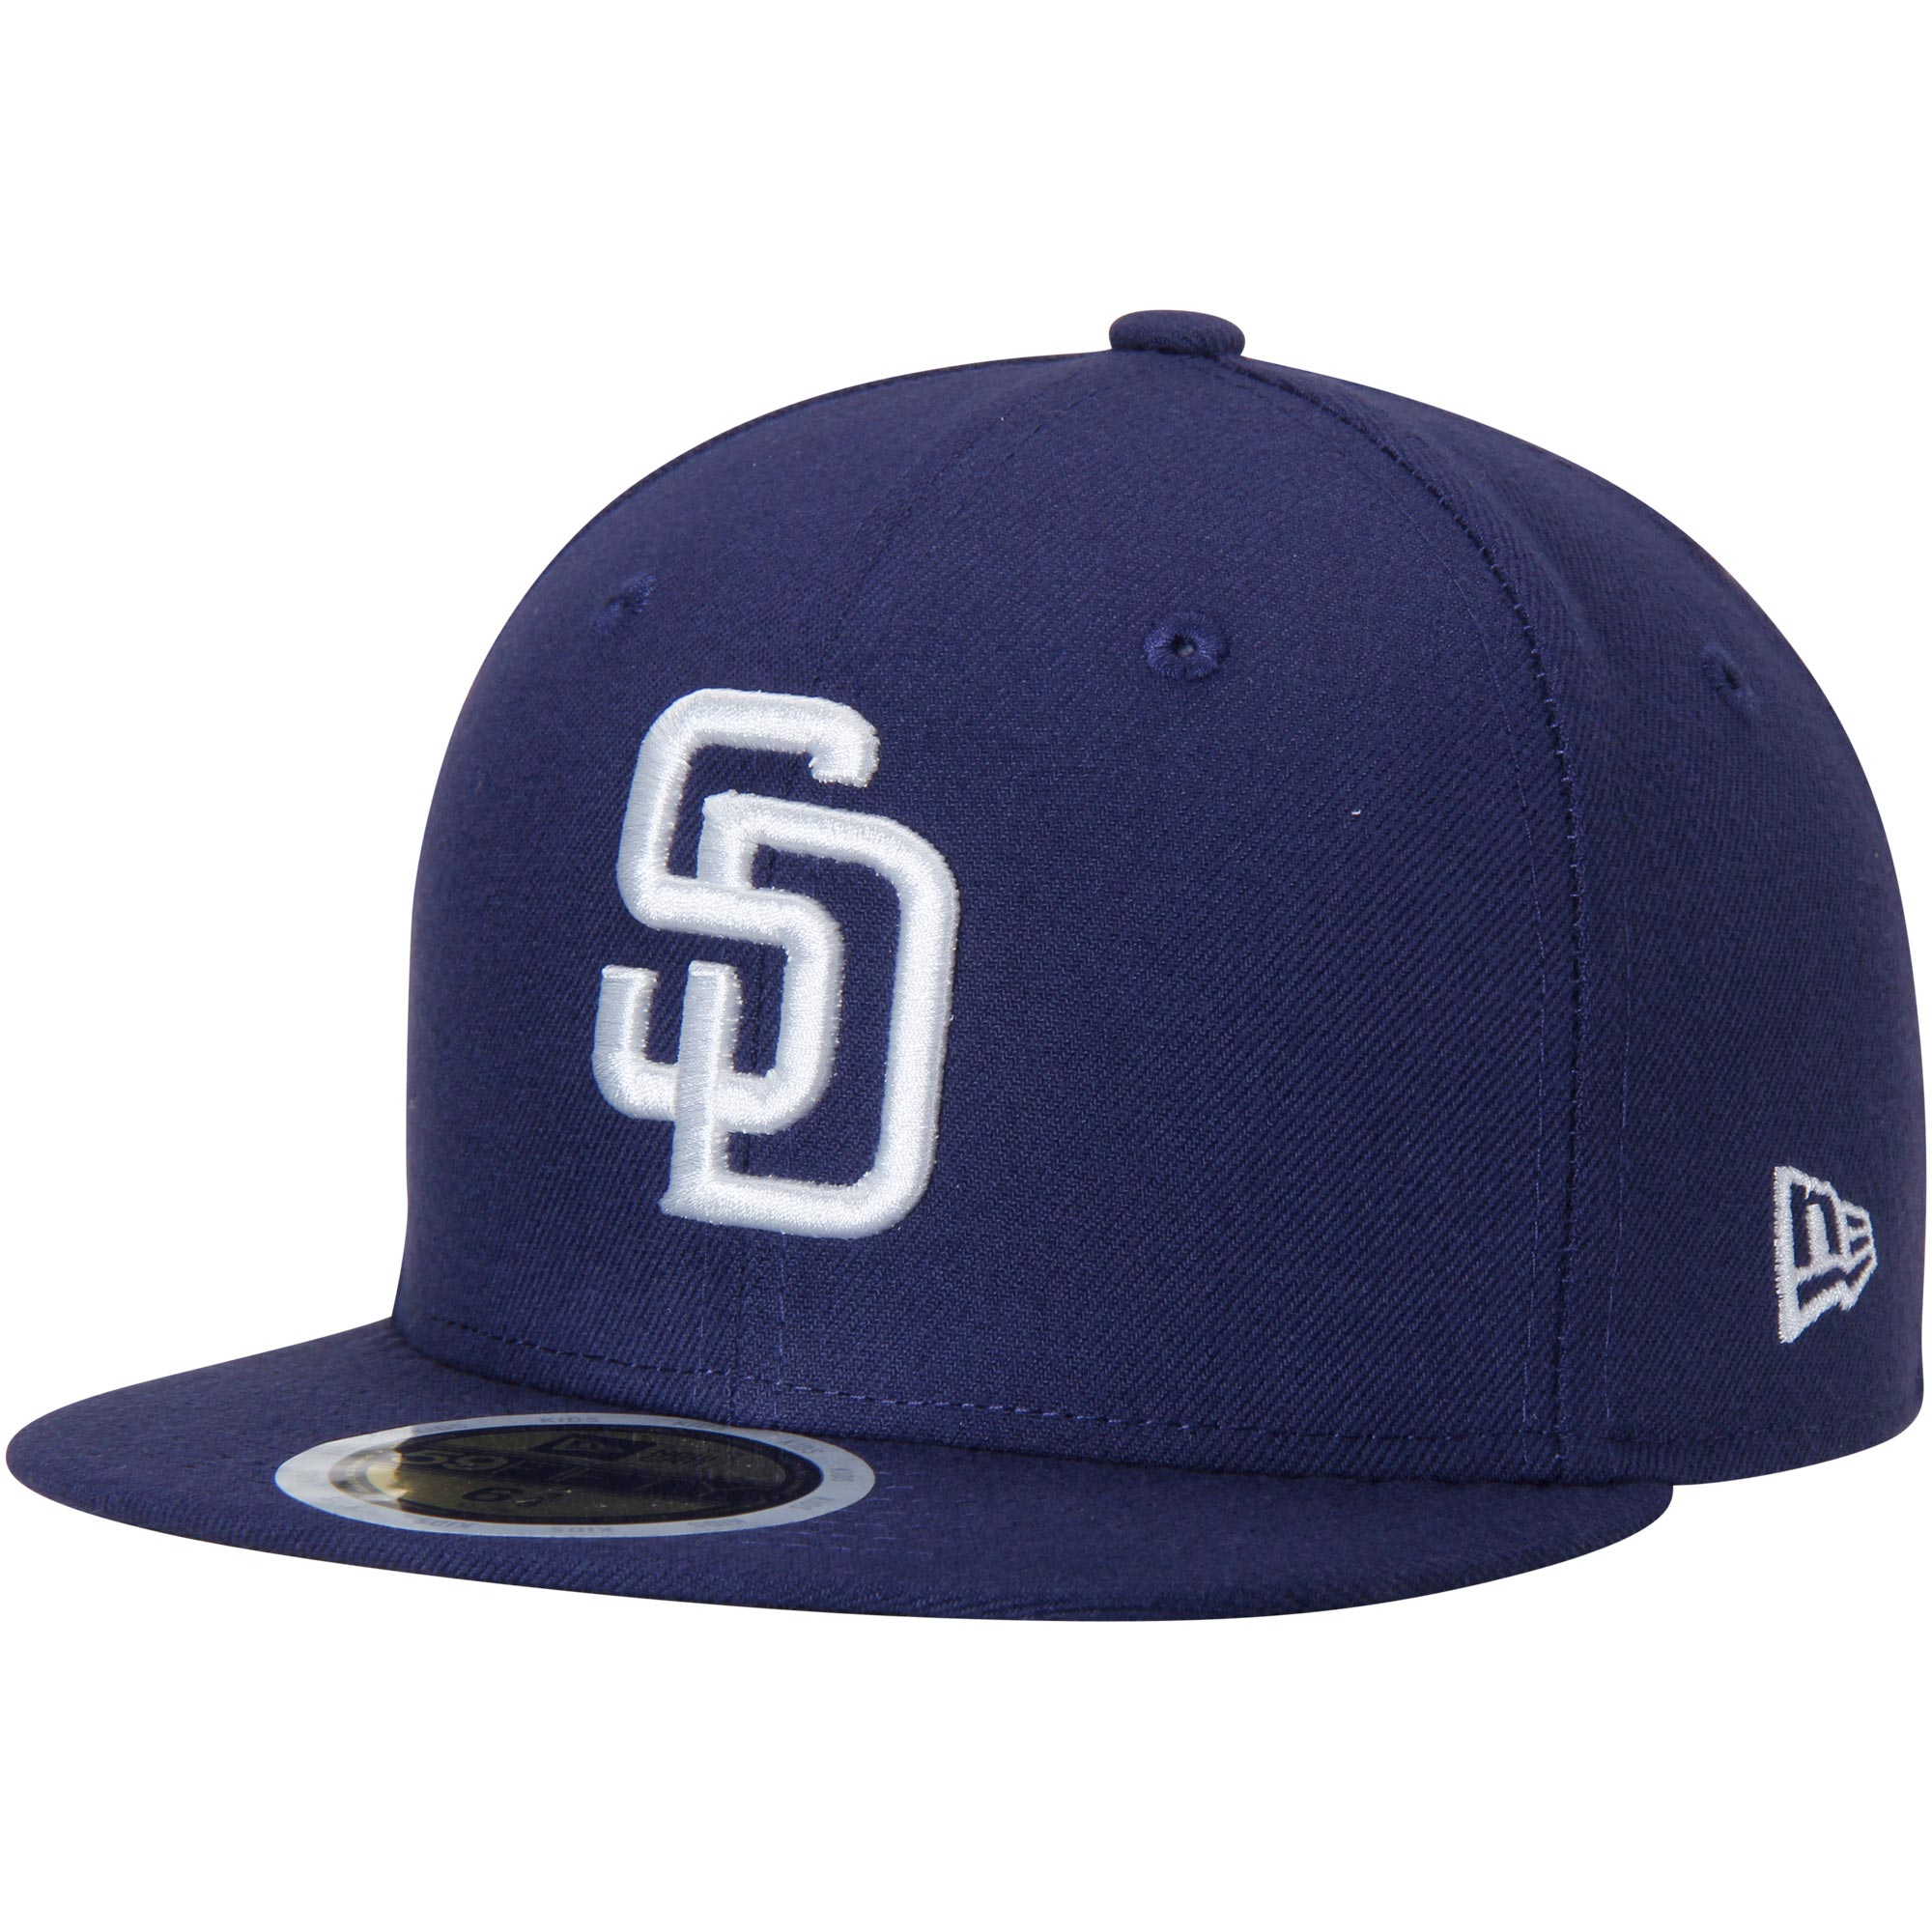 San Diego Padres New Era Youth Authentic Collection On-Field Home 59FIFTY Fitted Hat - Navy